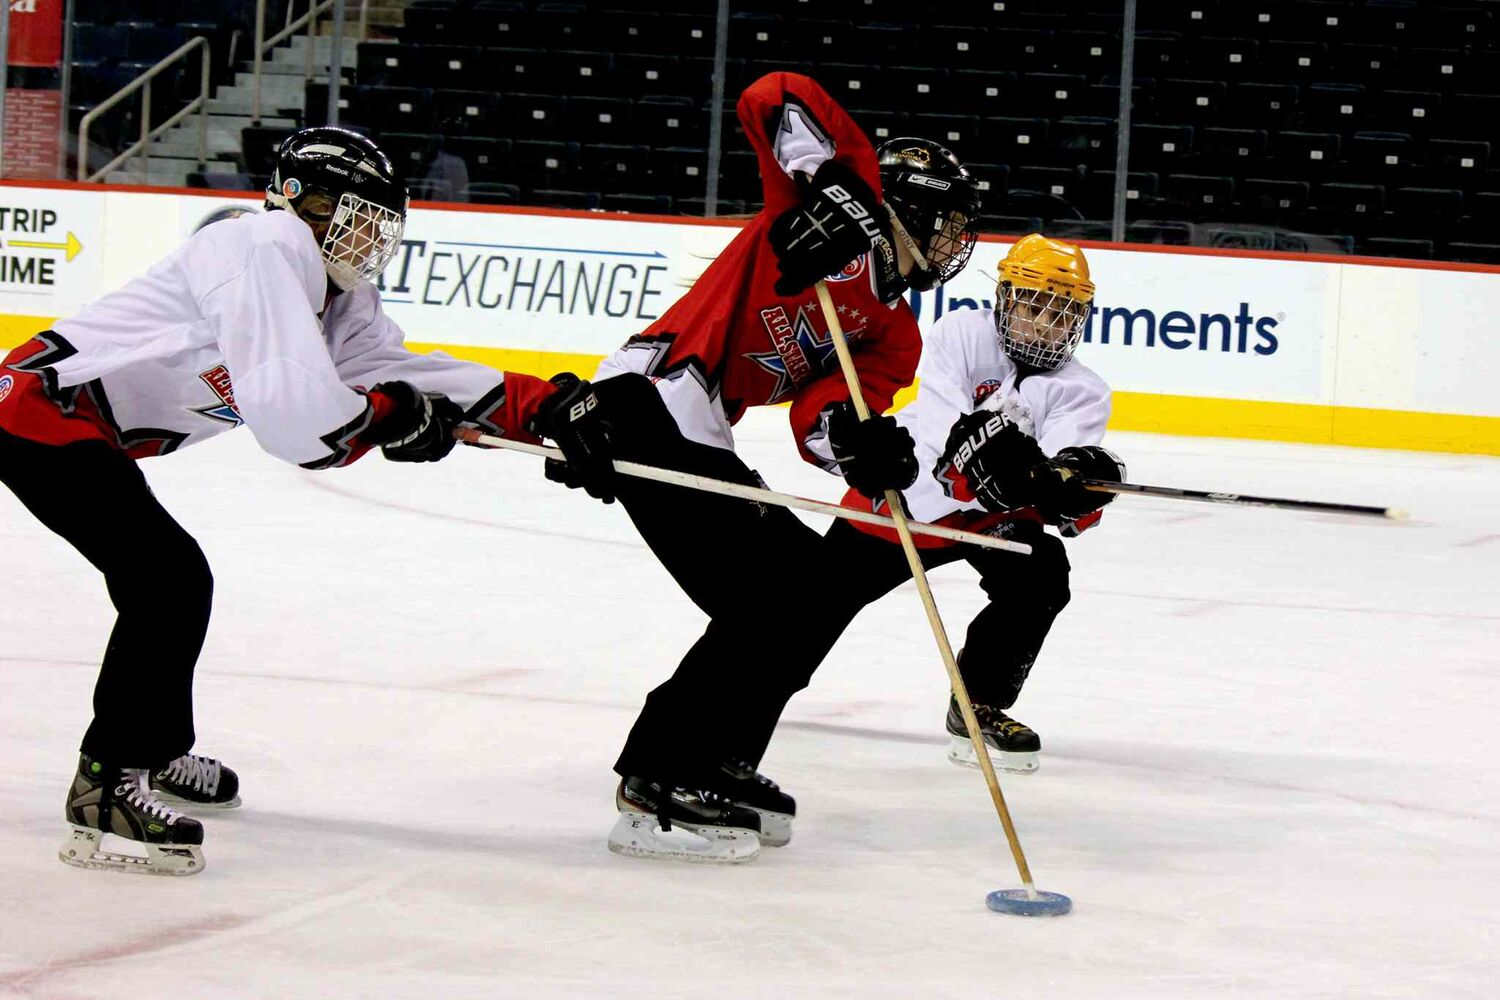 February 5, 2014 - Winnipeg Ringette League's all-star game at the MTS Centre.  (Jordan Thompson)